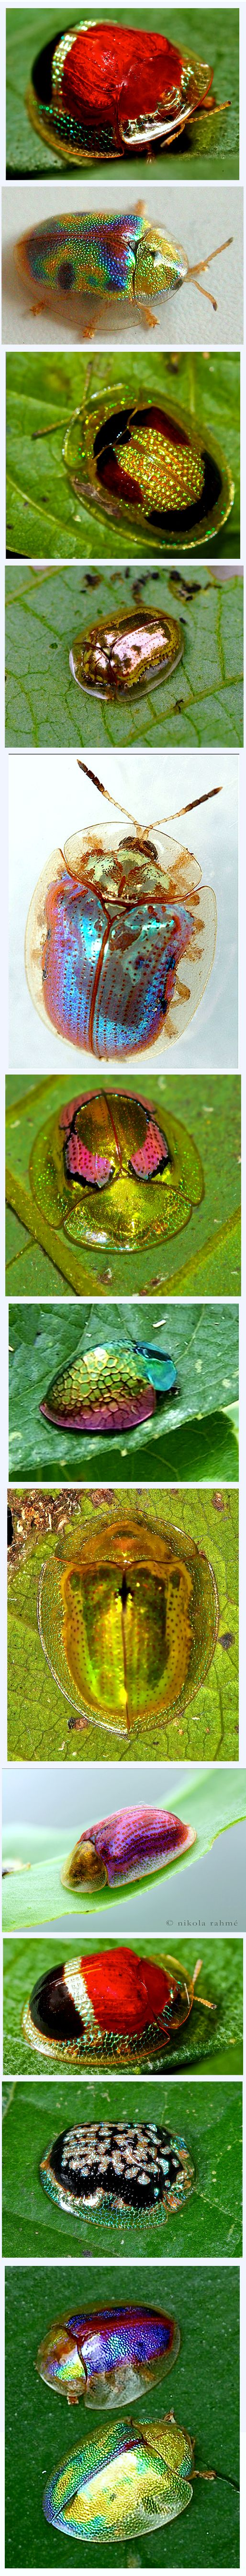 Tortoise Beetles - collage